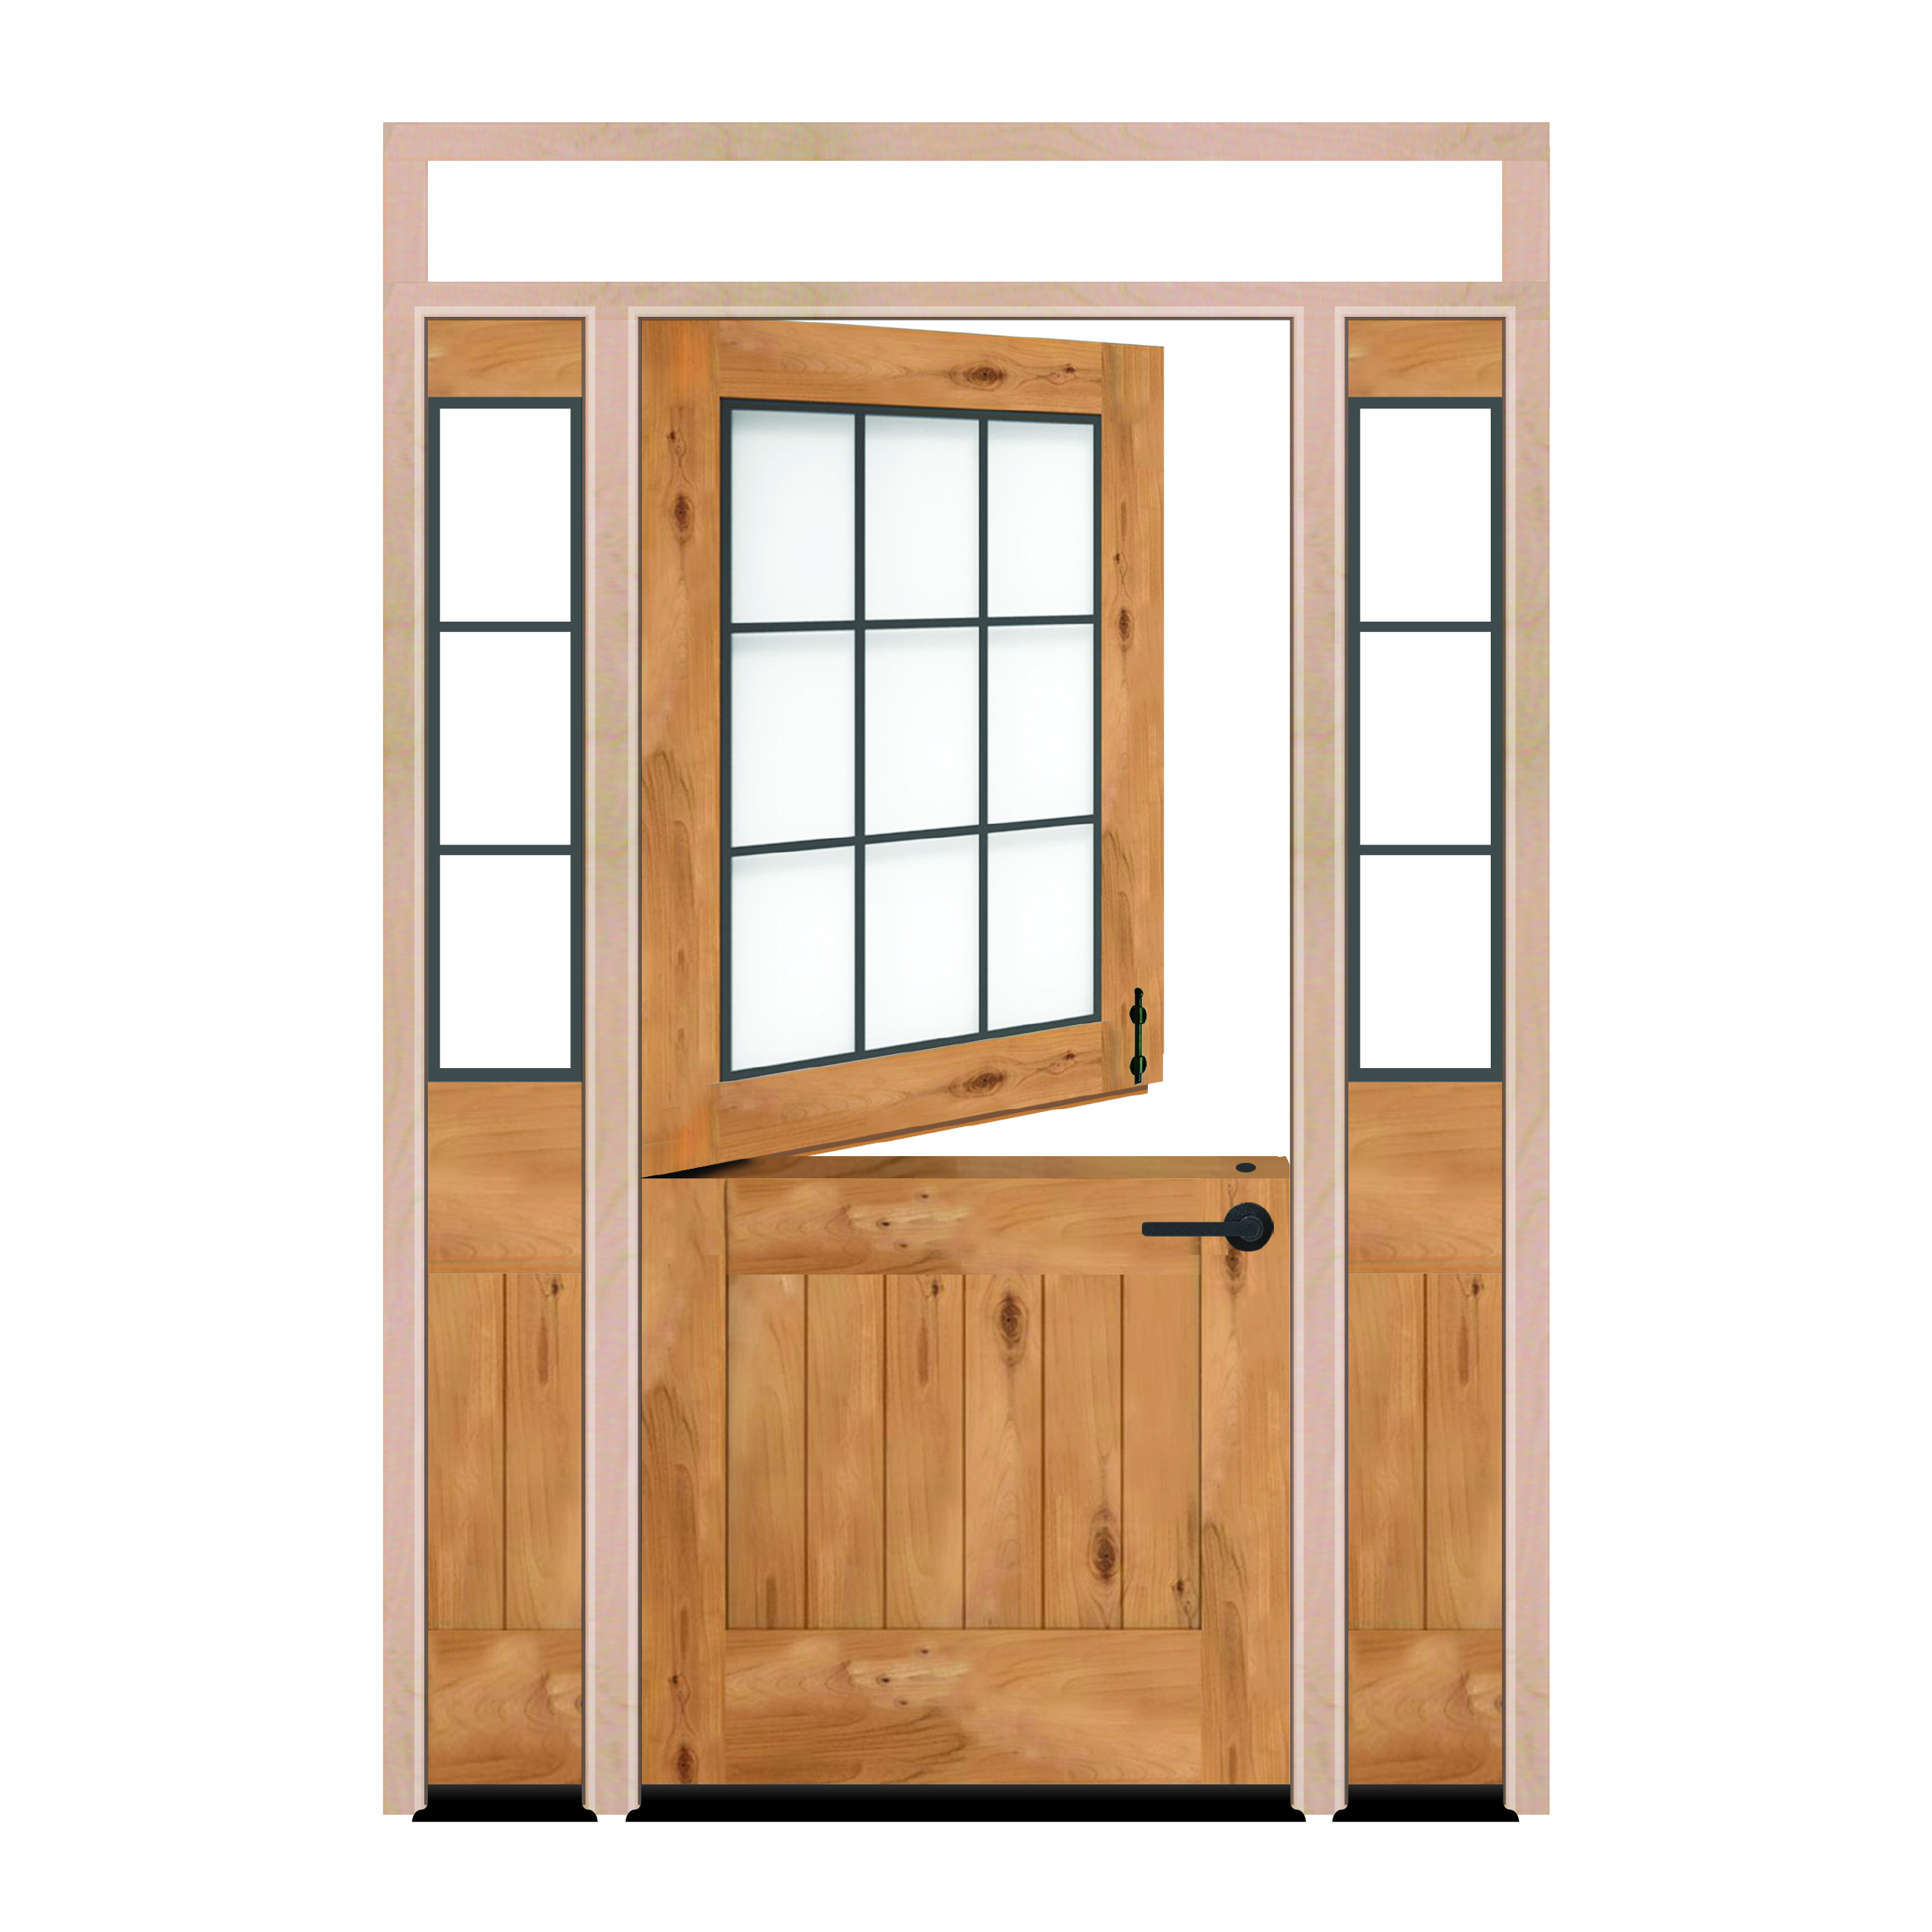 Farmhouse Dutch Exterior Door With Sidelights And Transom Window Rustica